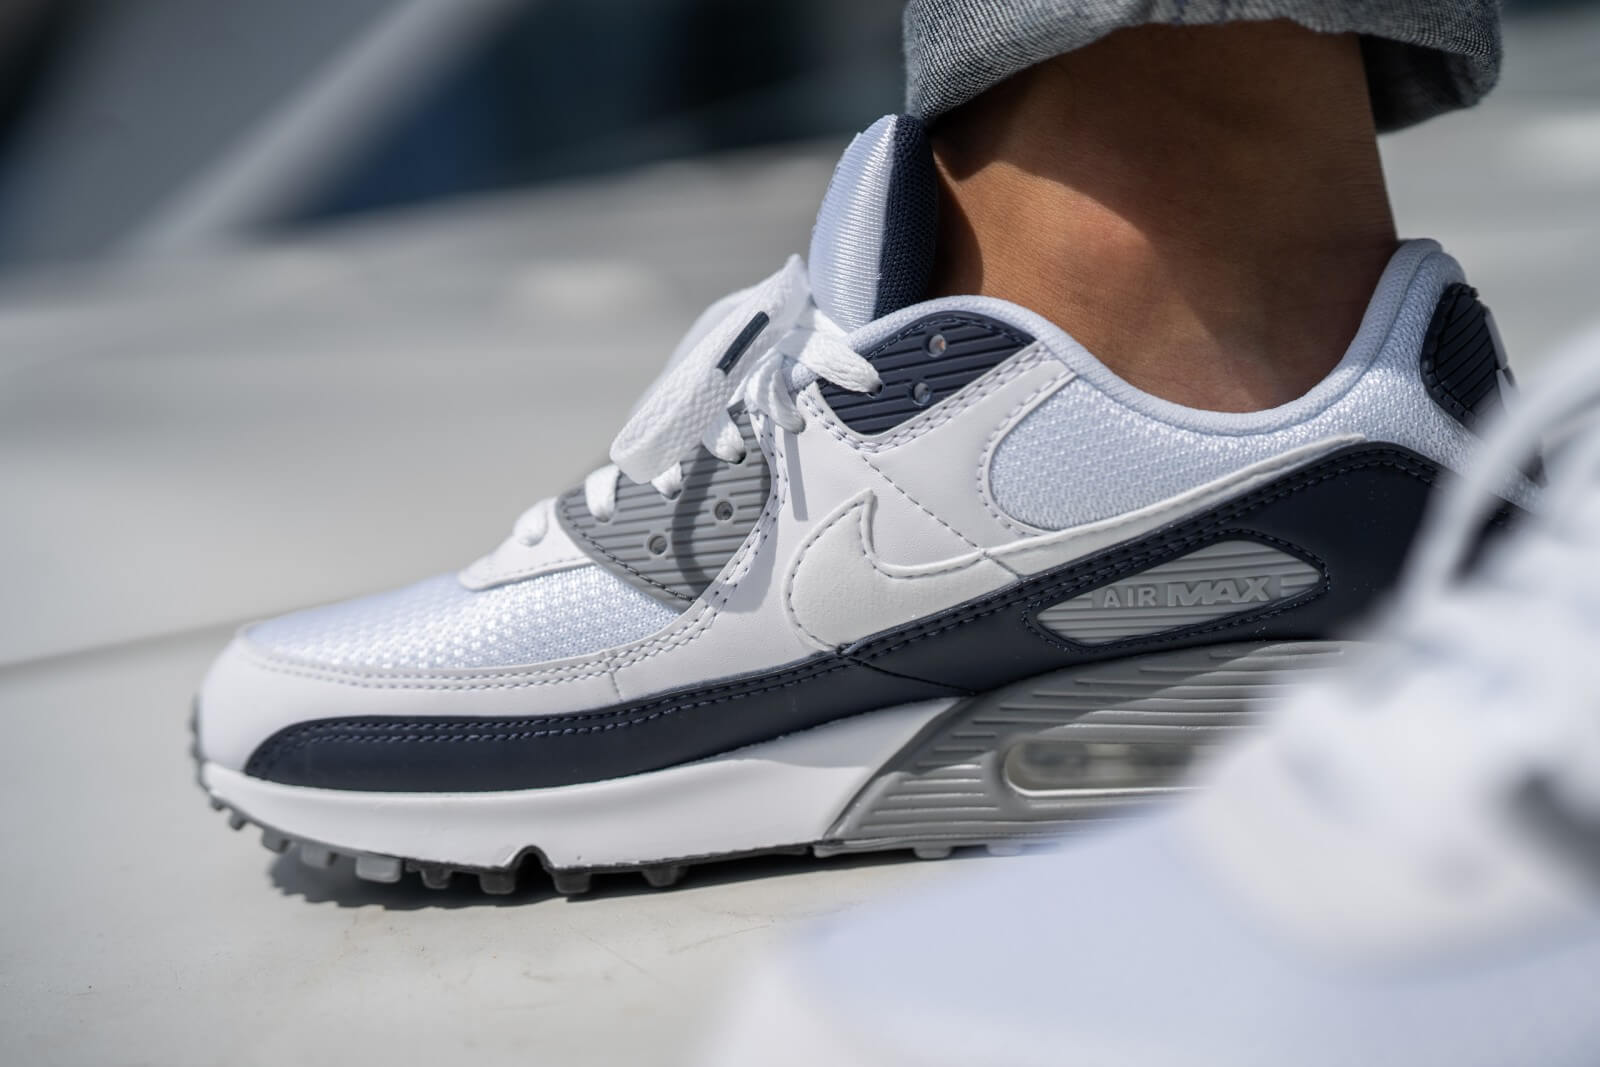 Nike Air Max 90 WhiteParticle Grey Obsidian CT4352 100